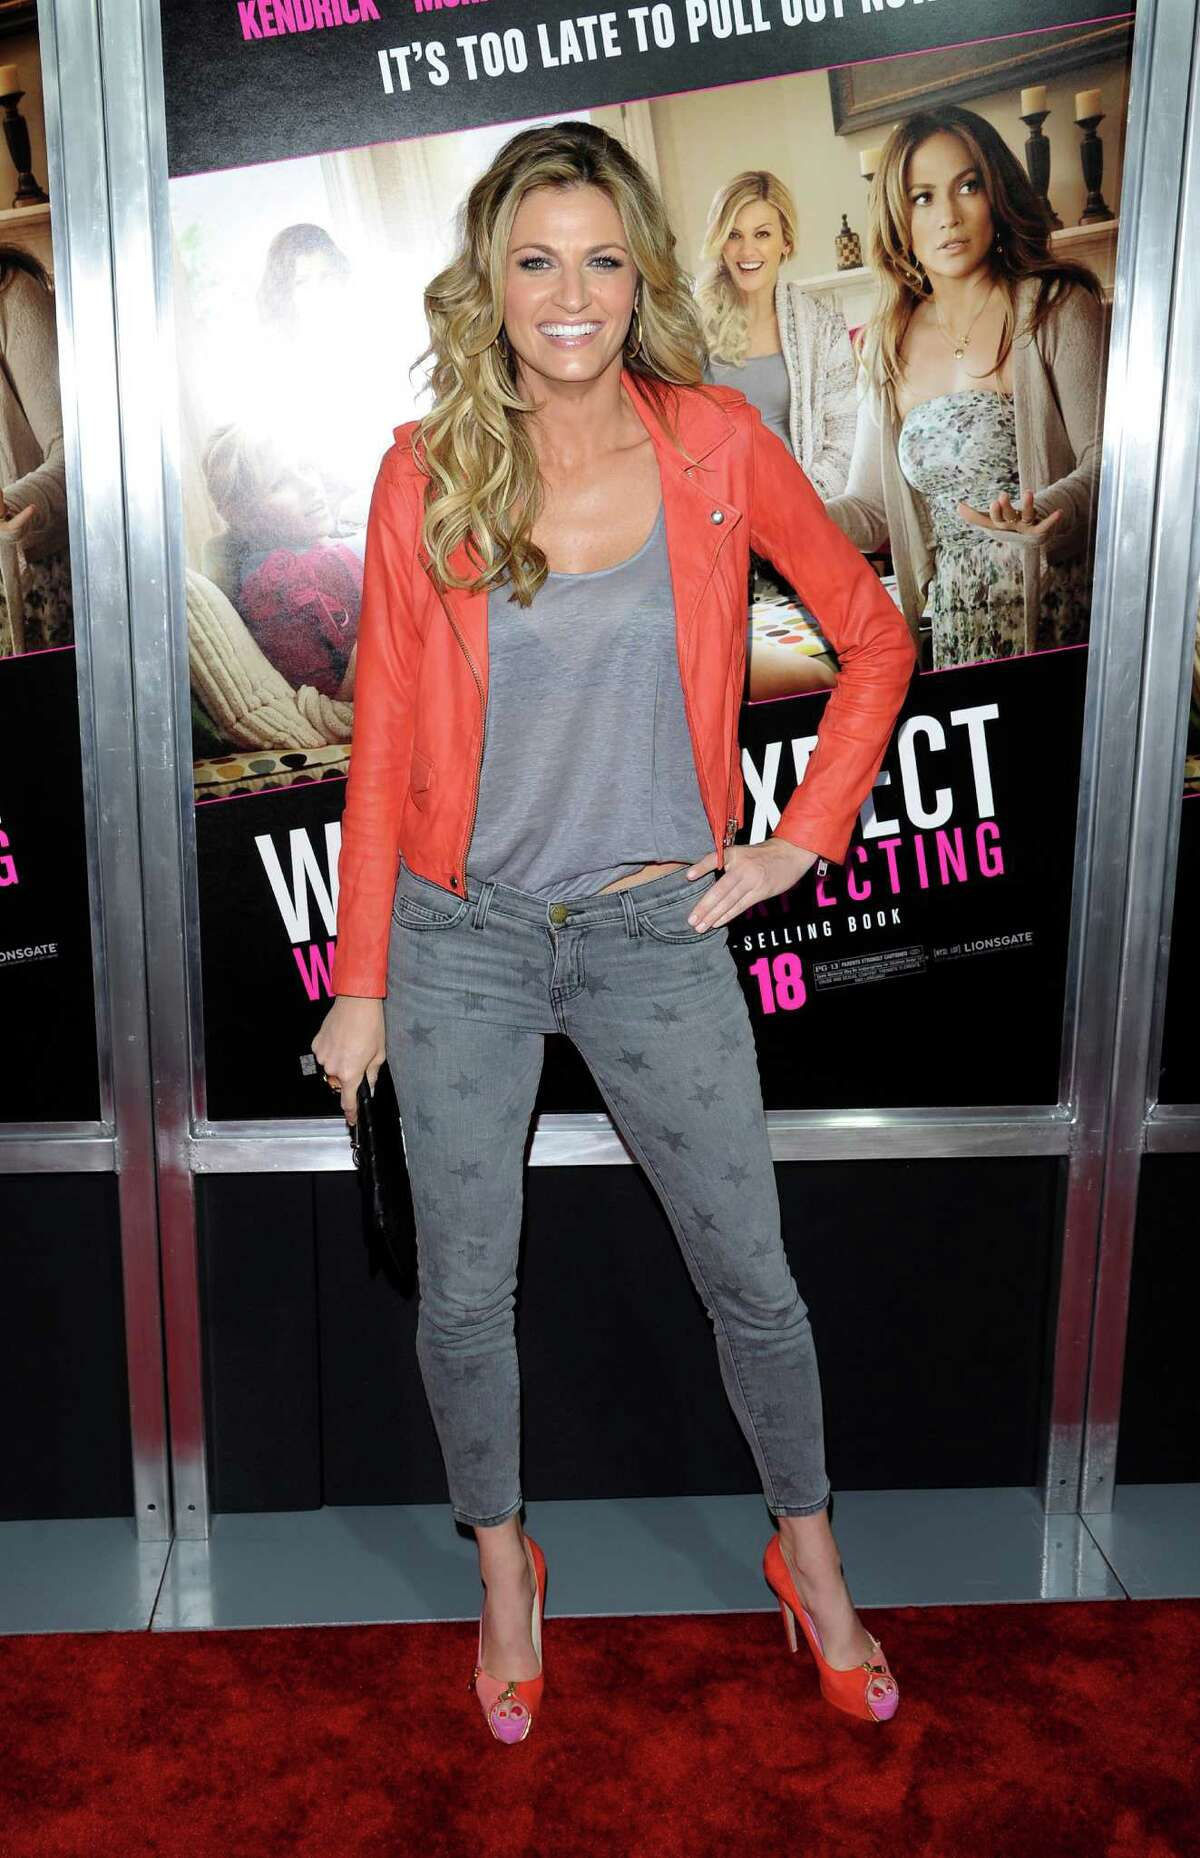 Television personality Erin Andrews attends the premiere of